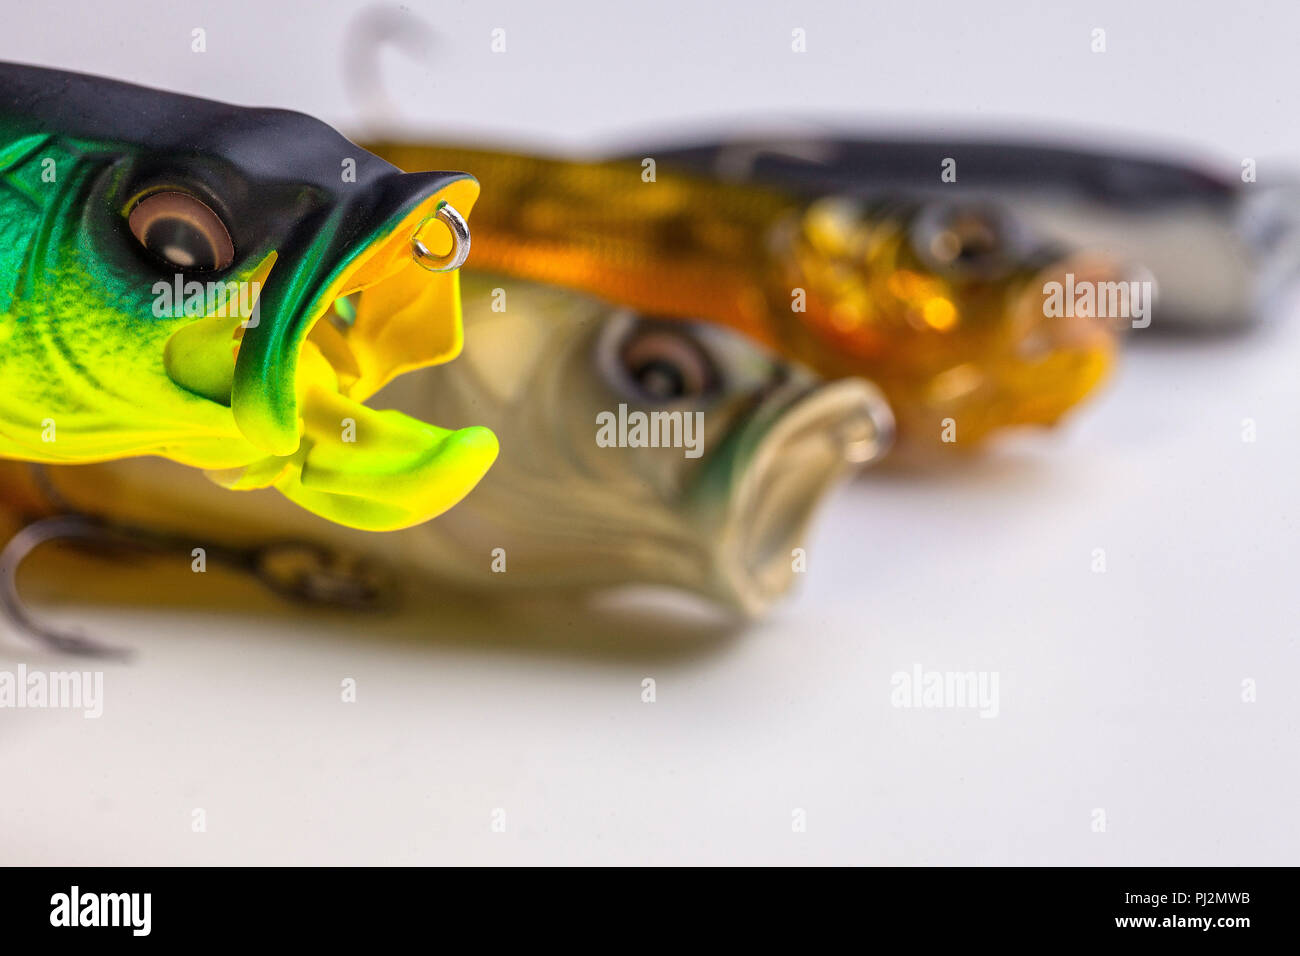 Artificial bait for fishing. For catching predatory fish. Stock Photo